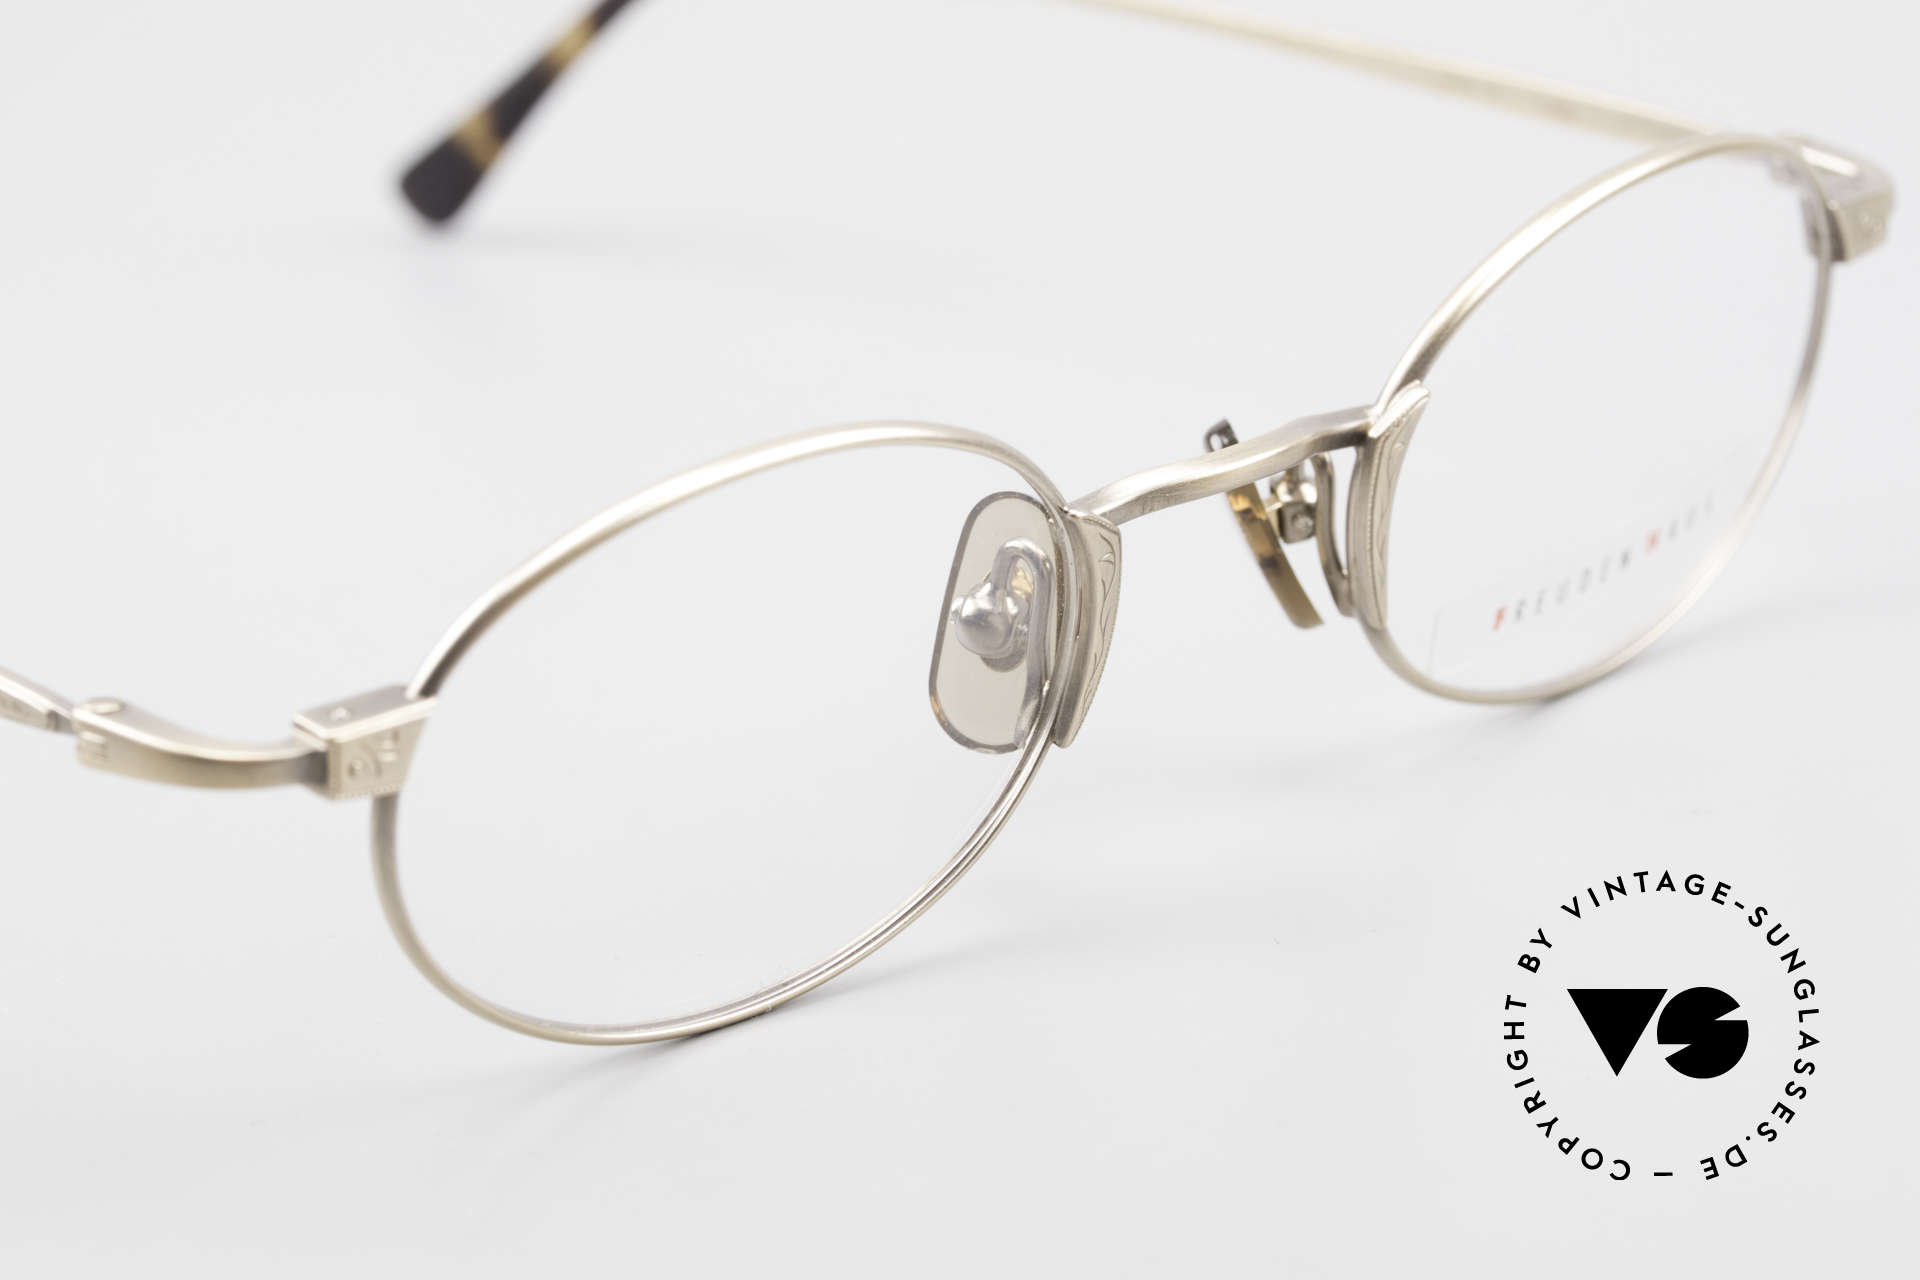 Freudenhaus Zaki Oval Titan Vintage Glasses, unworn (like all our rare vintage designer eyeglasses), Made for Men and Women